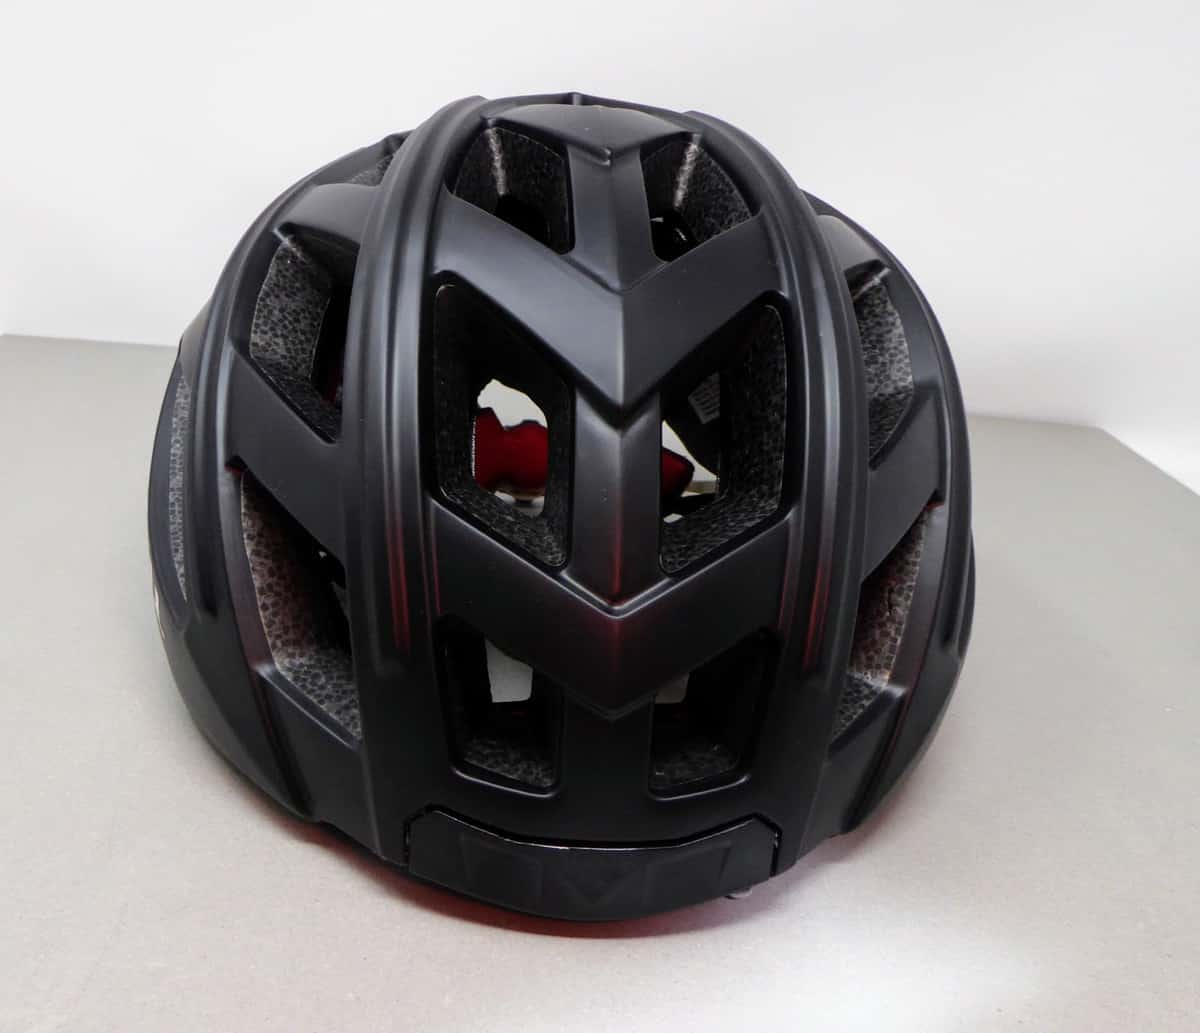 Livall BH60SE Review - Smart Bike Helmet with lights & audio 4